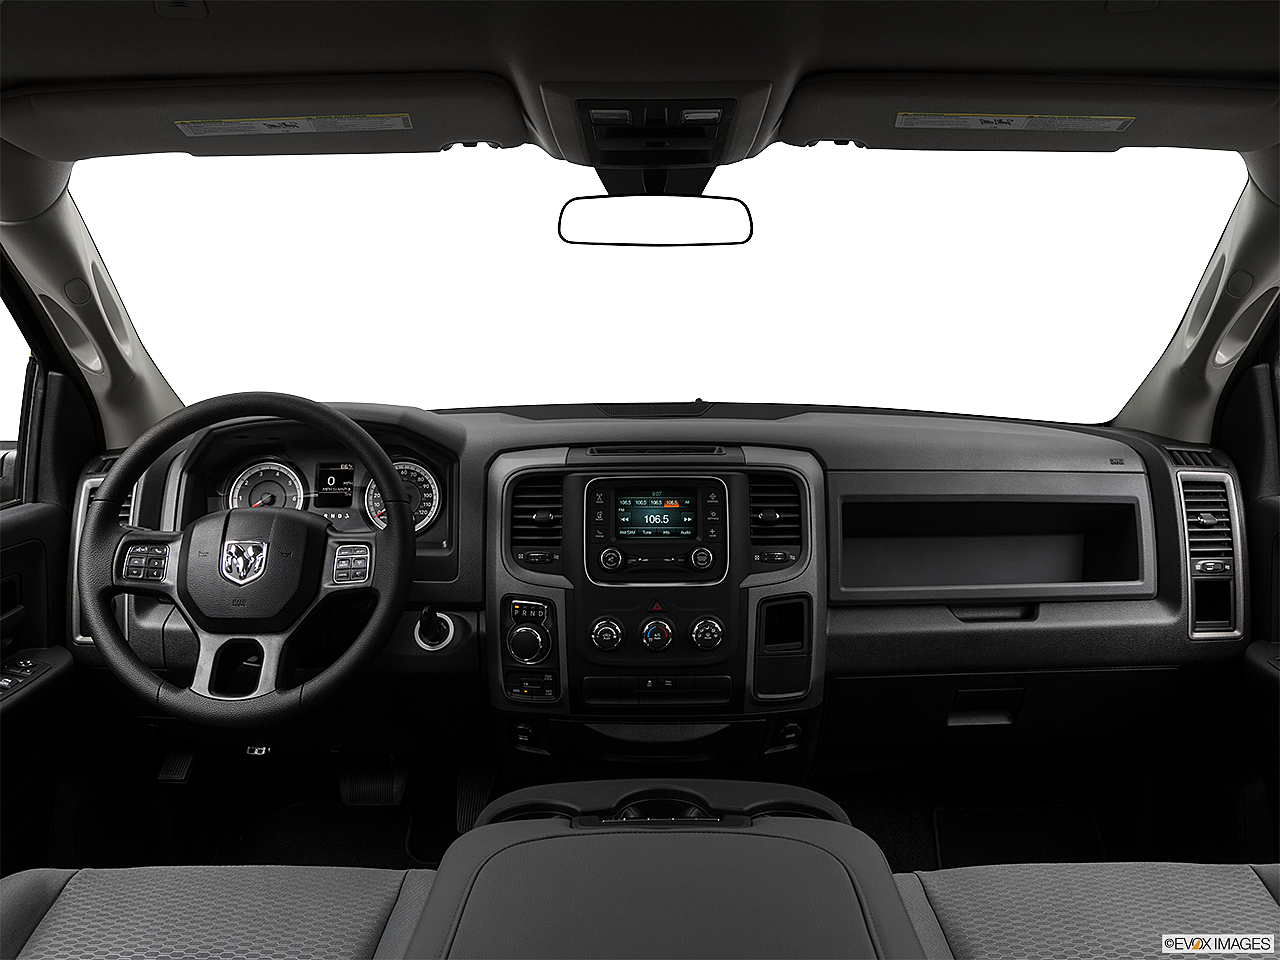 2018 RAM 1500 Express, centered wide dash shot